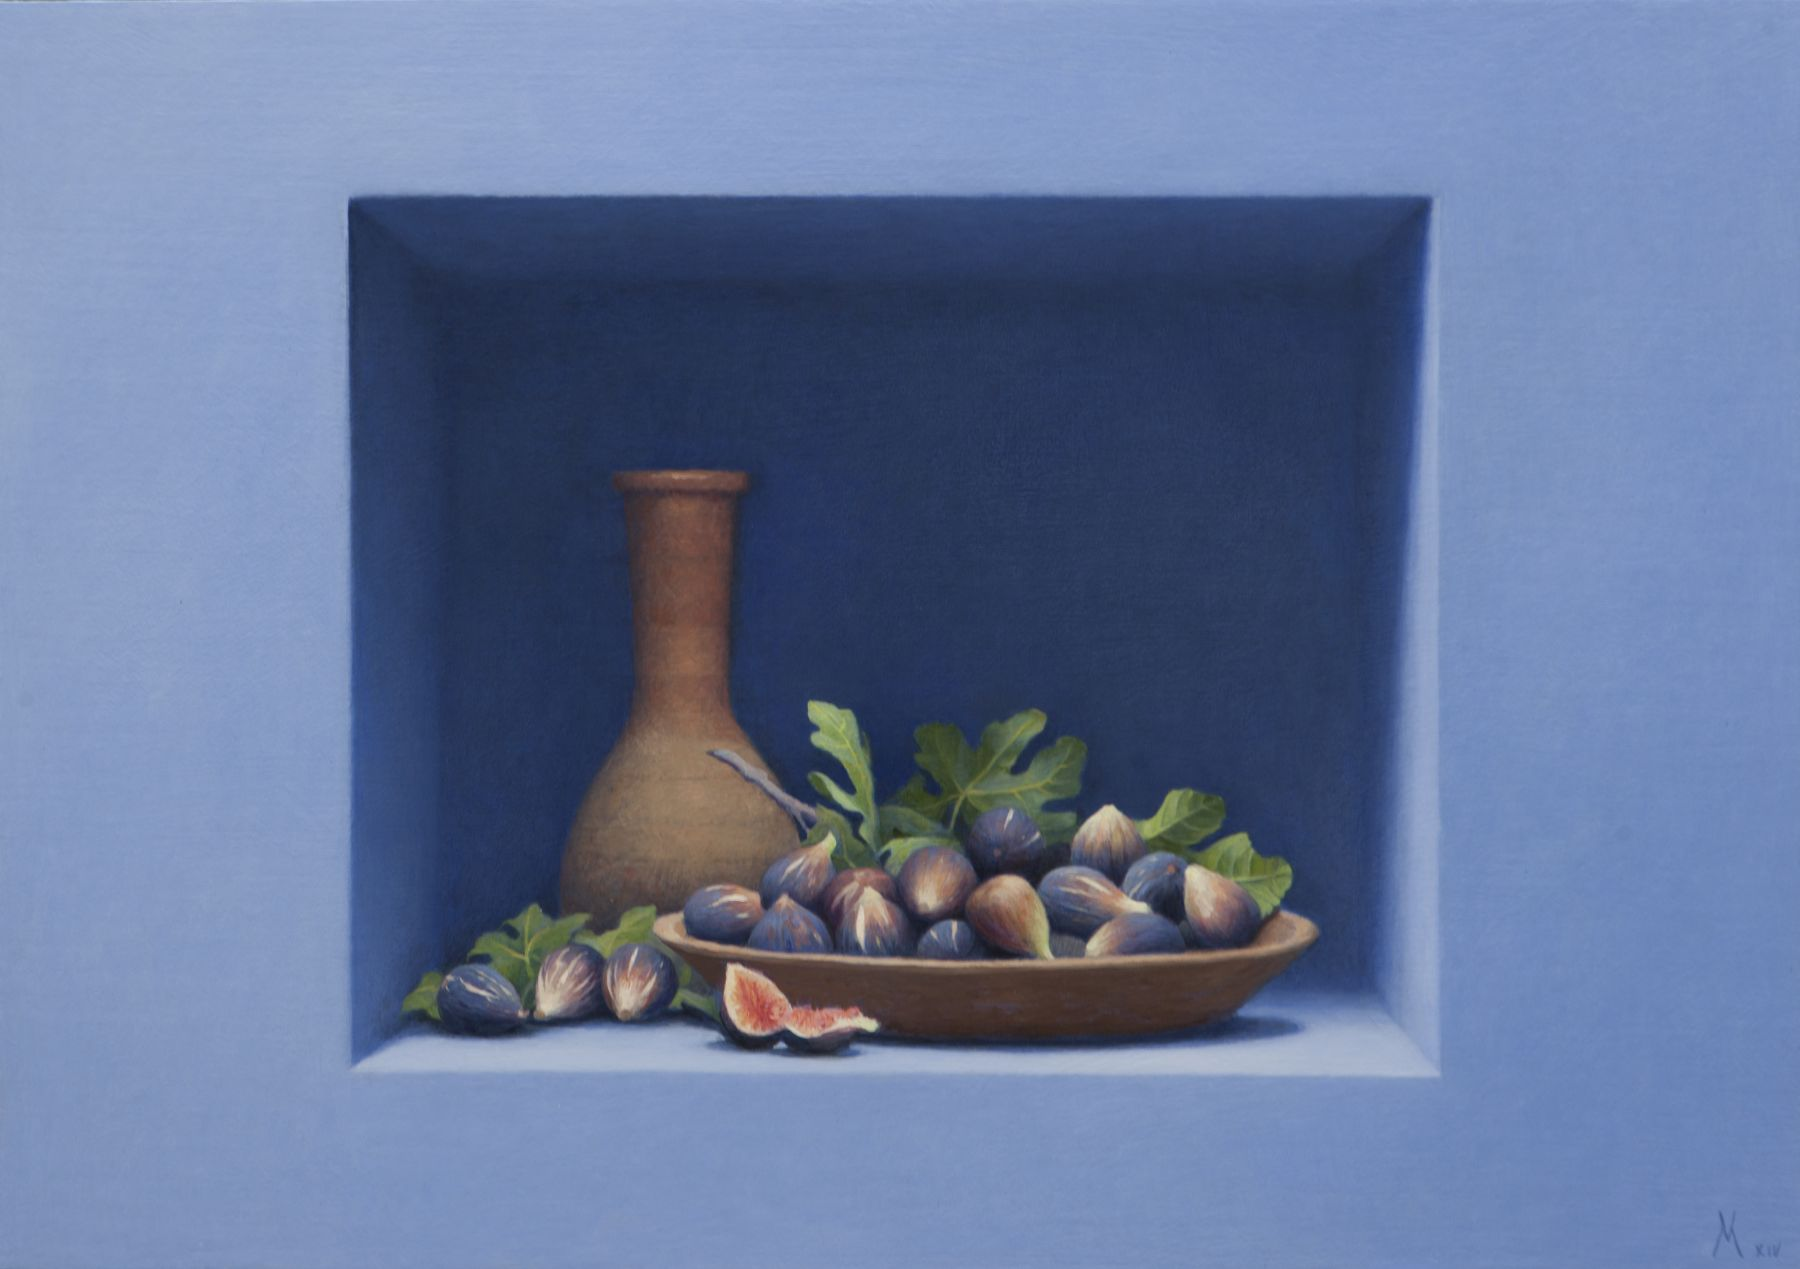 Guillermo Muñoz Vera, Figs with Vessel (SOLD), 2014, oil on canvas mounted on panel, 27 1/2 x 39 1/4 inches